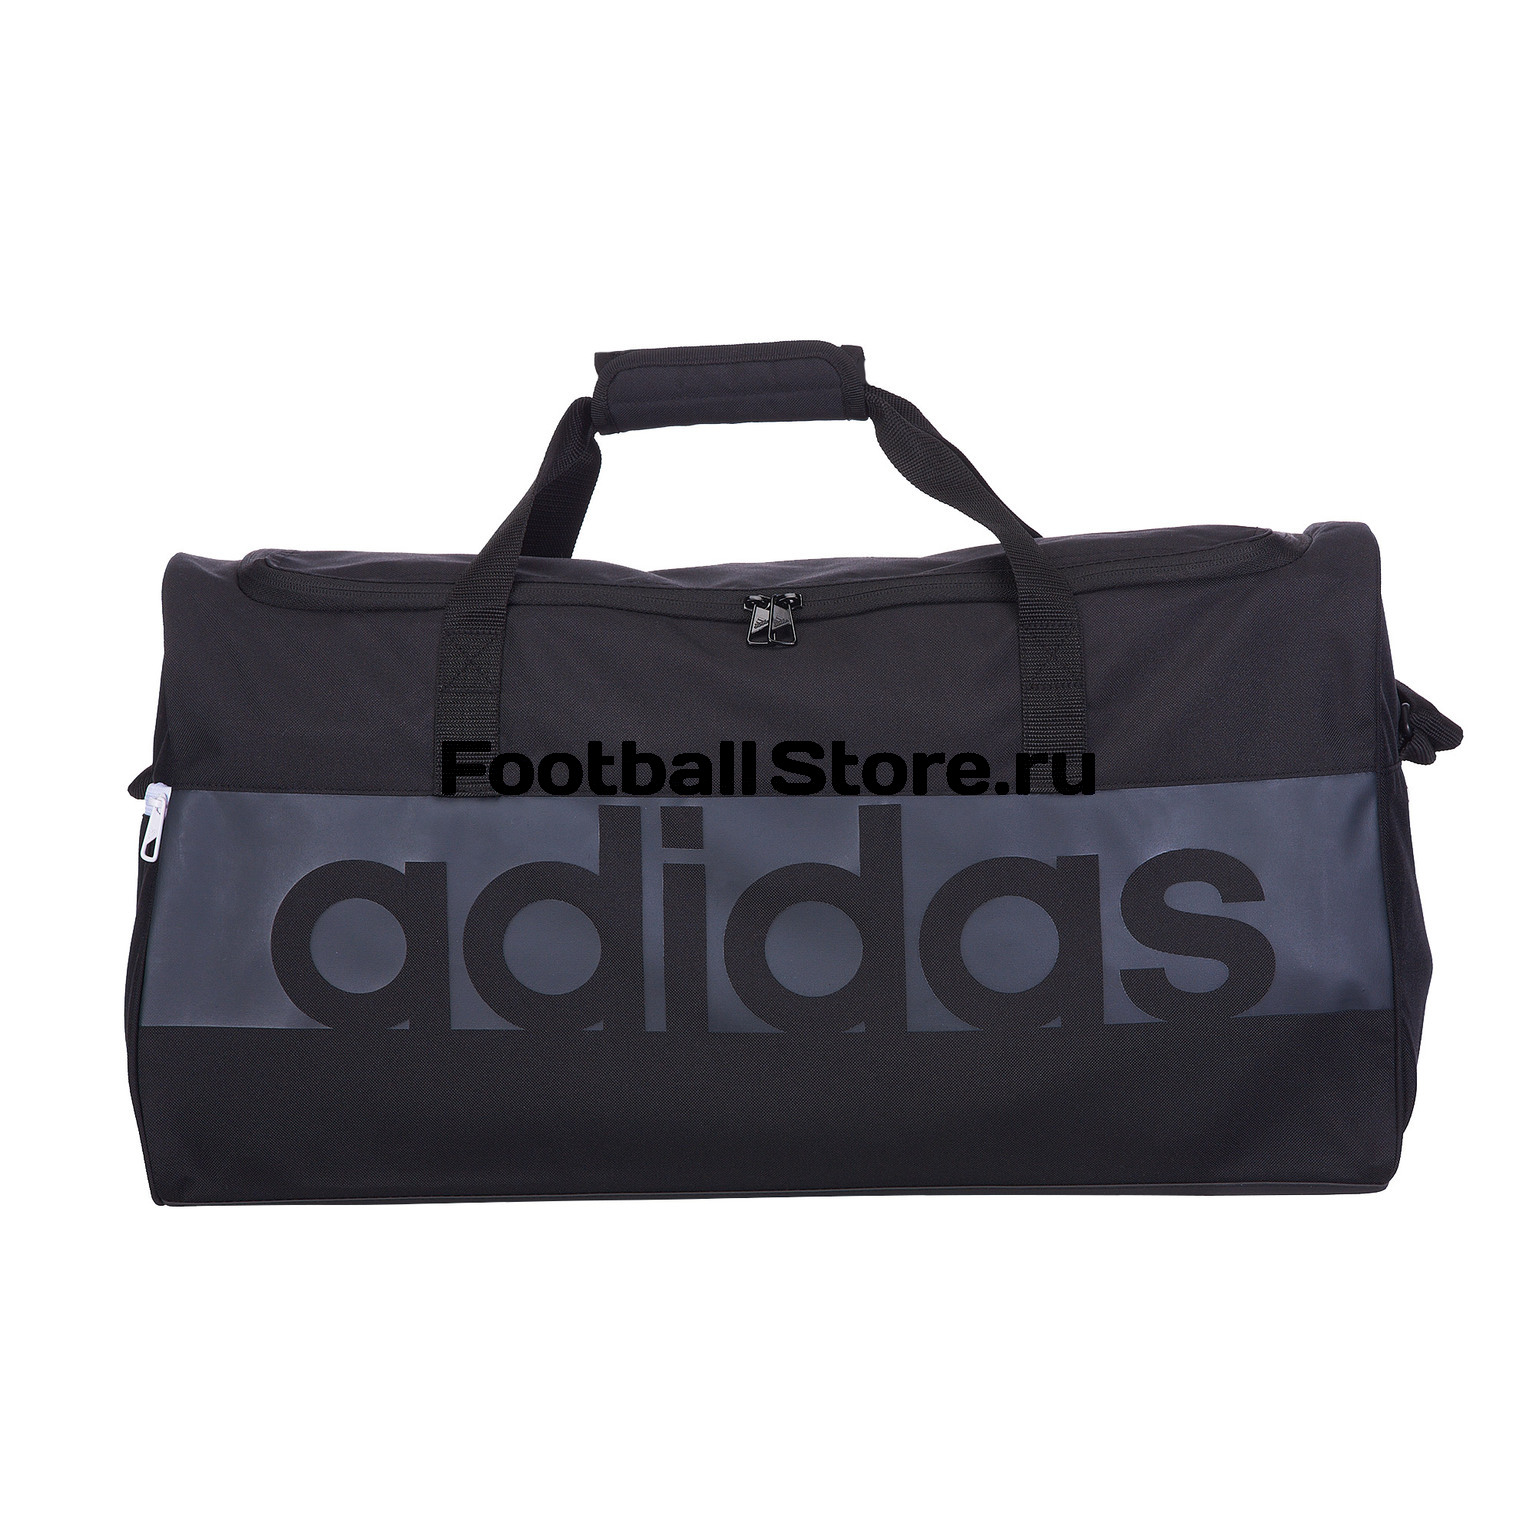 Сумка Adidas Tiro M S96148 рюкзак adidas tiro backpack du1996